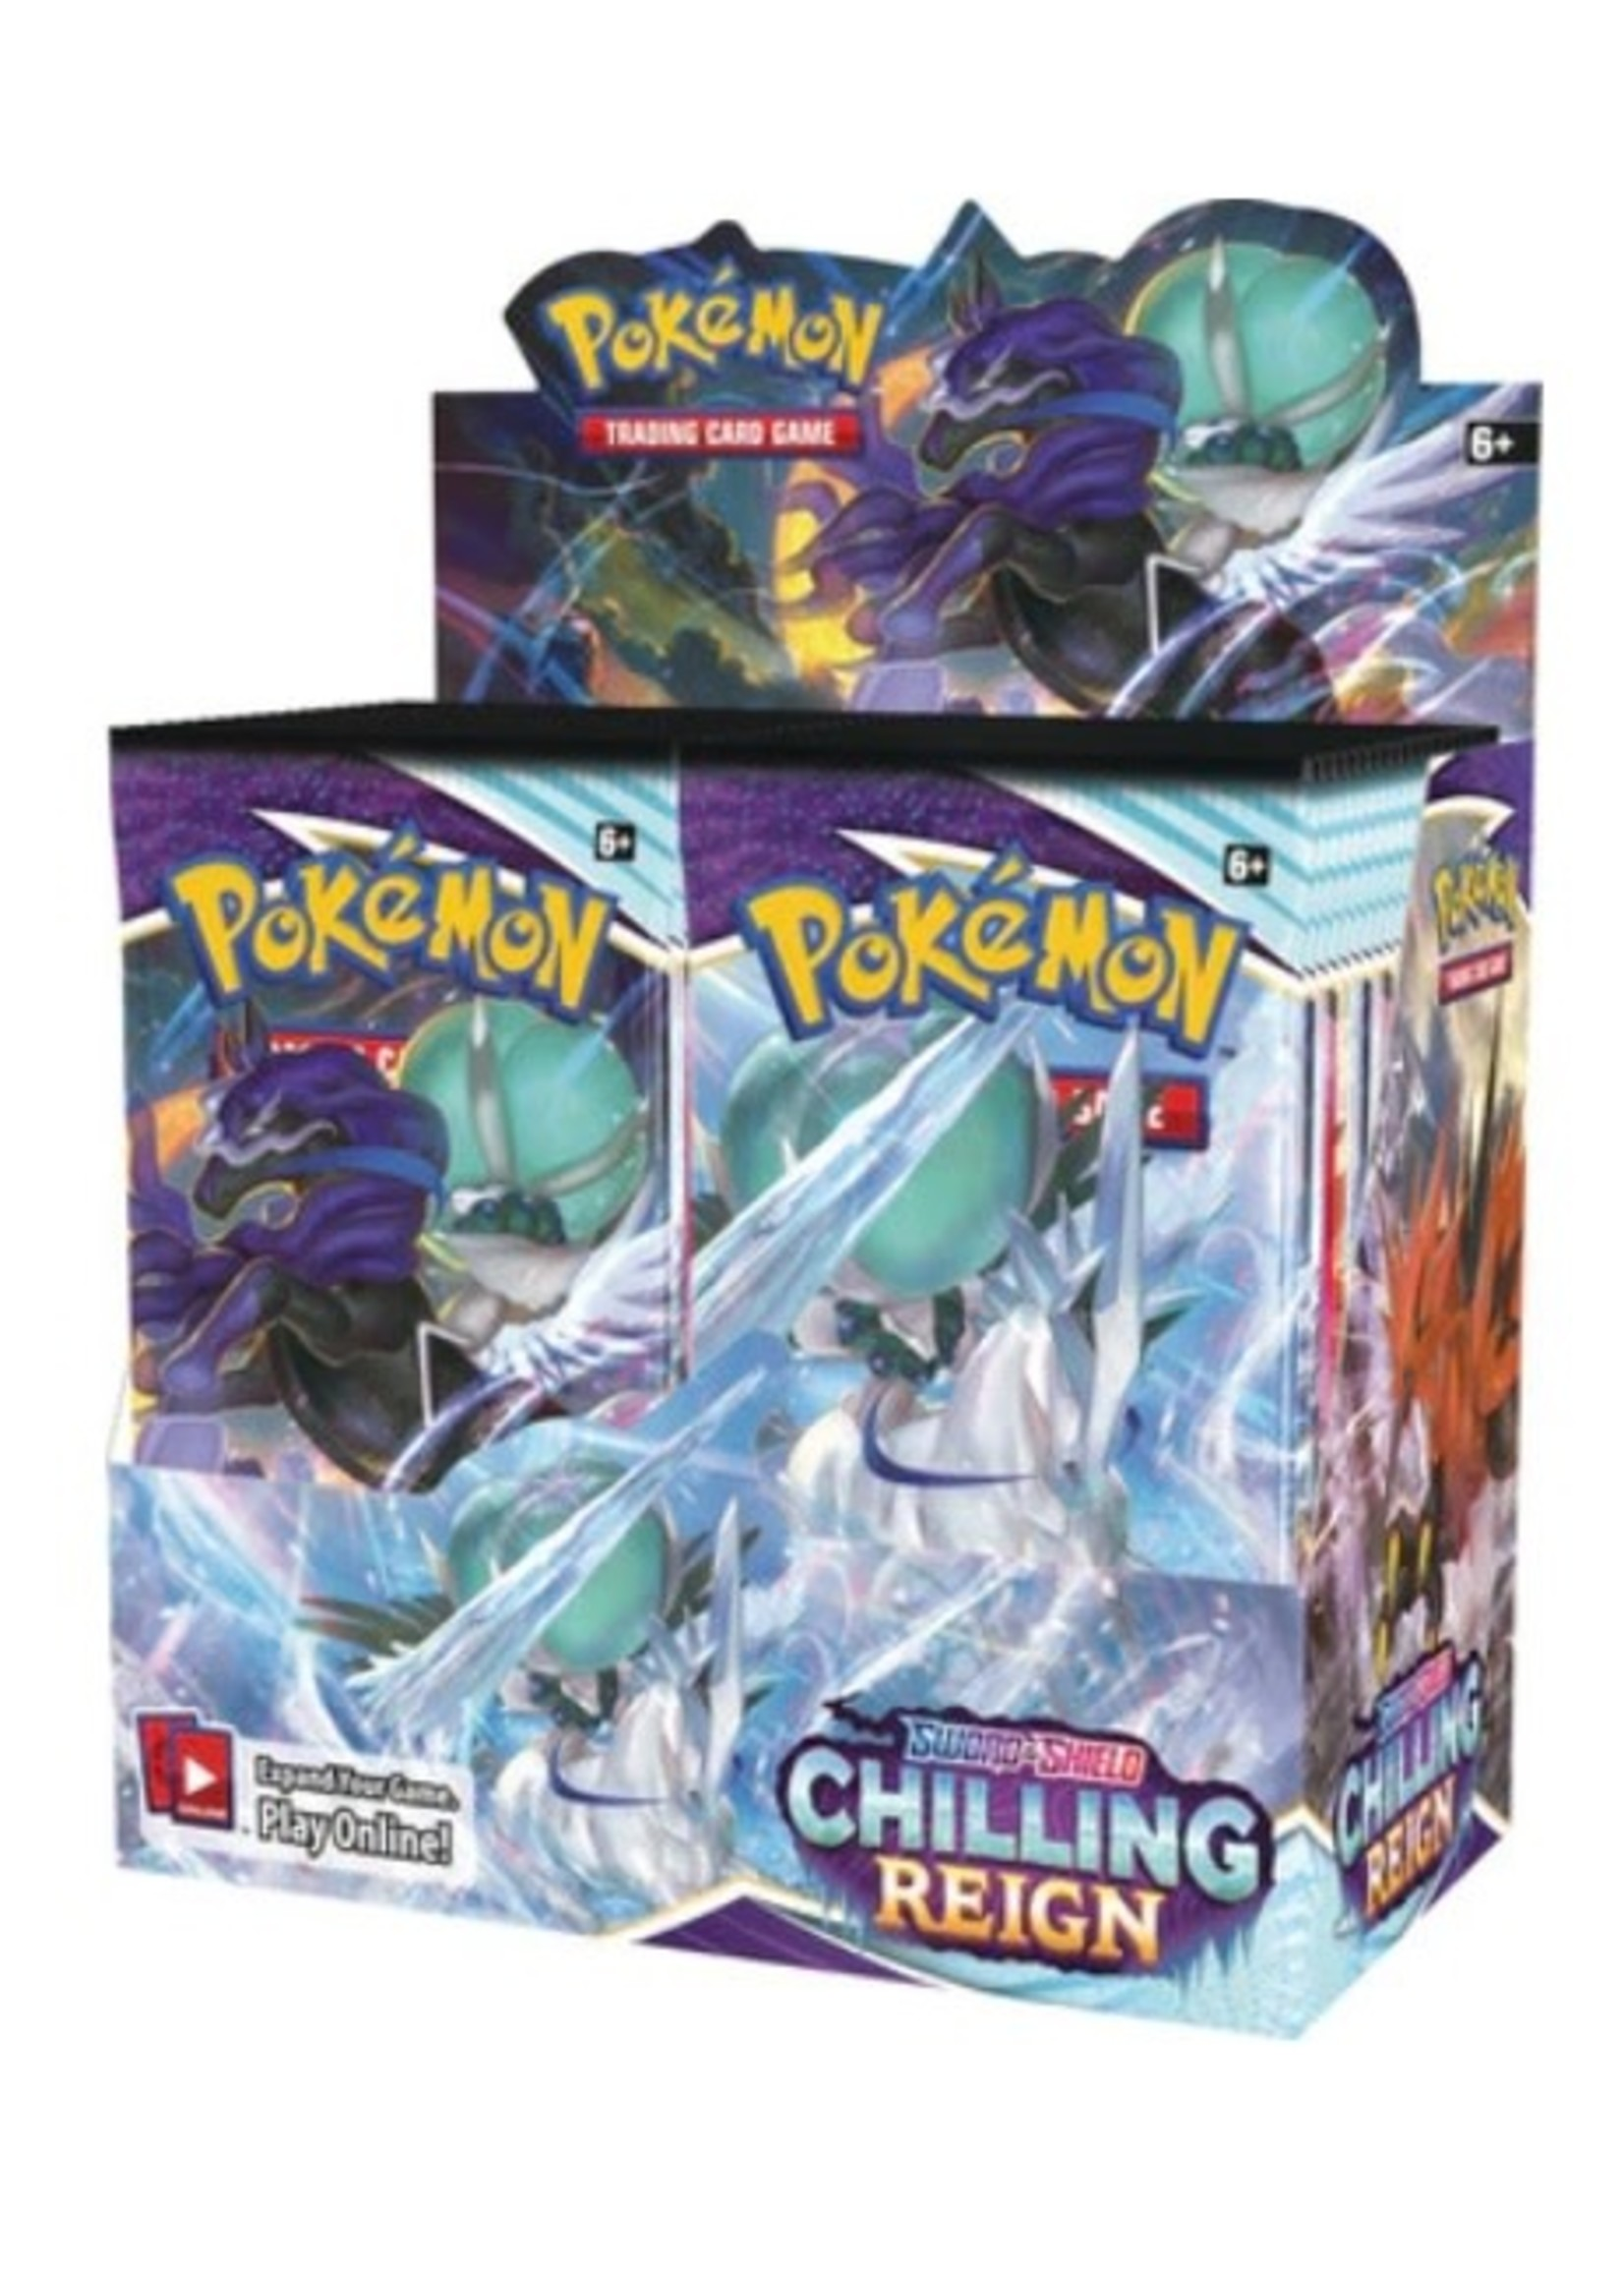 Pokemon Chilling Reign Booster Box